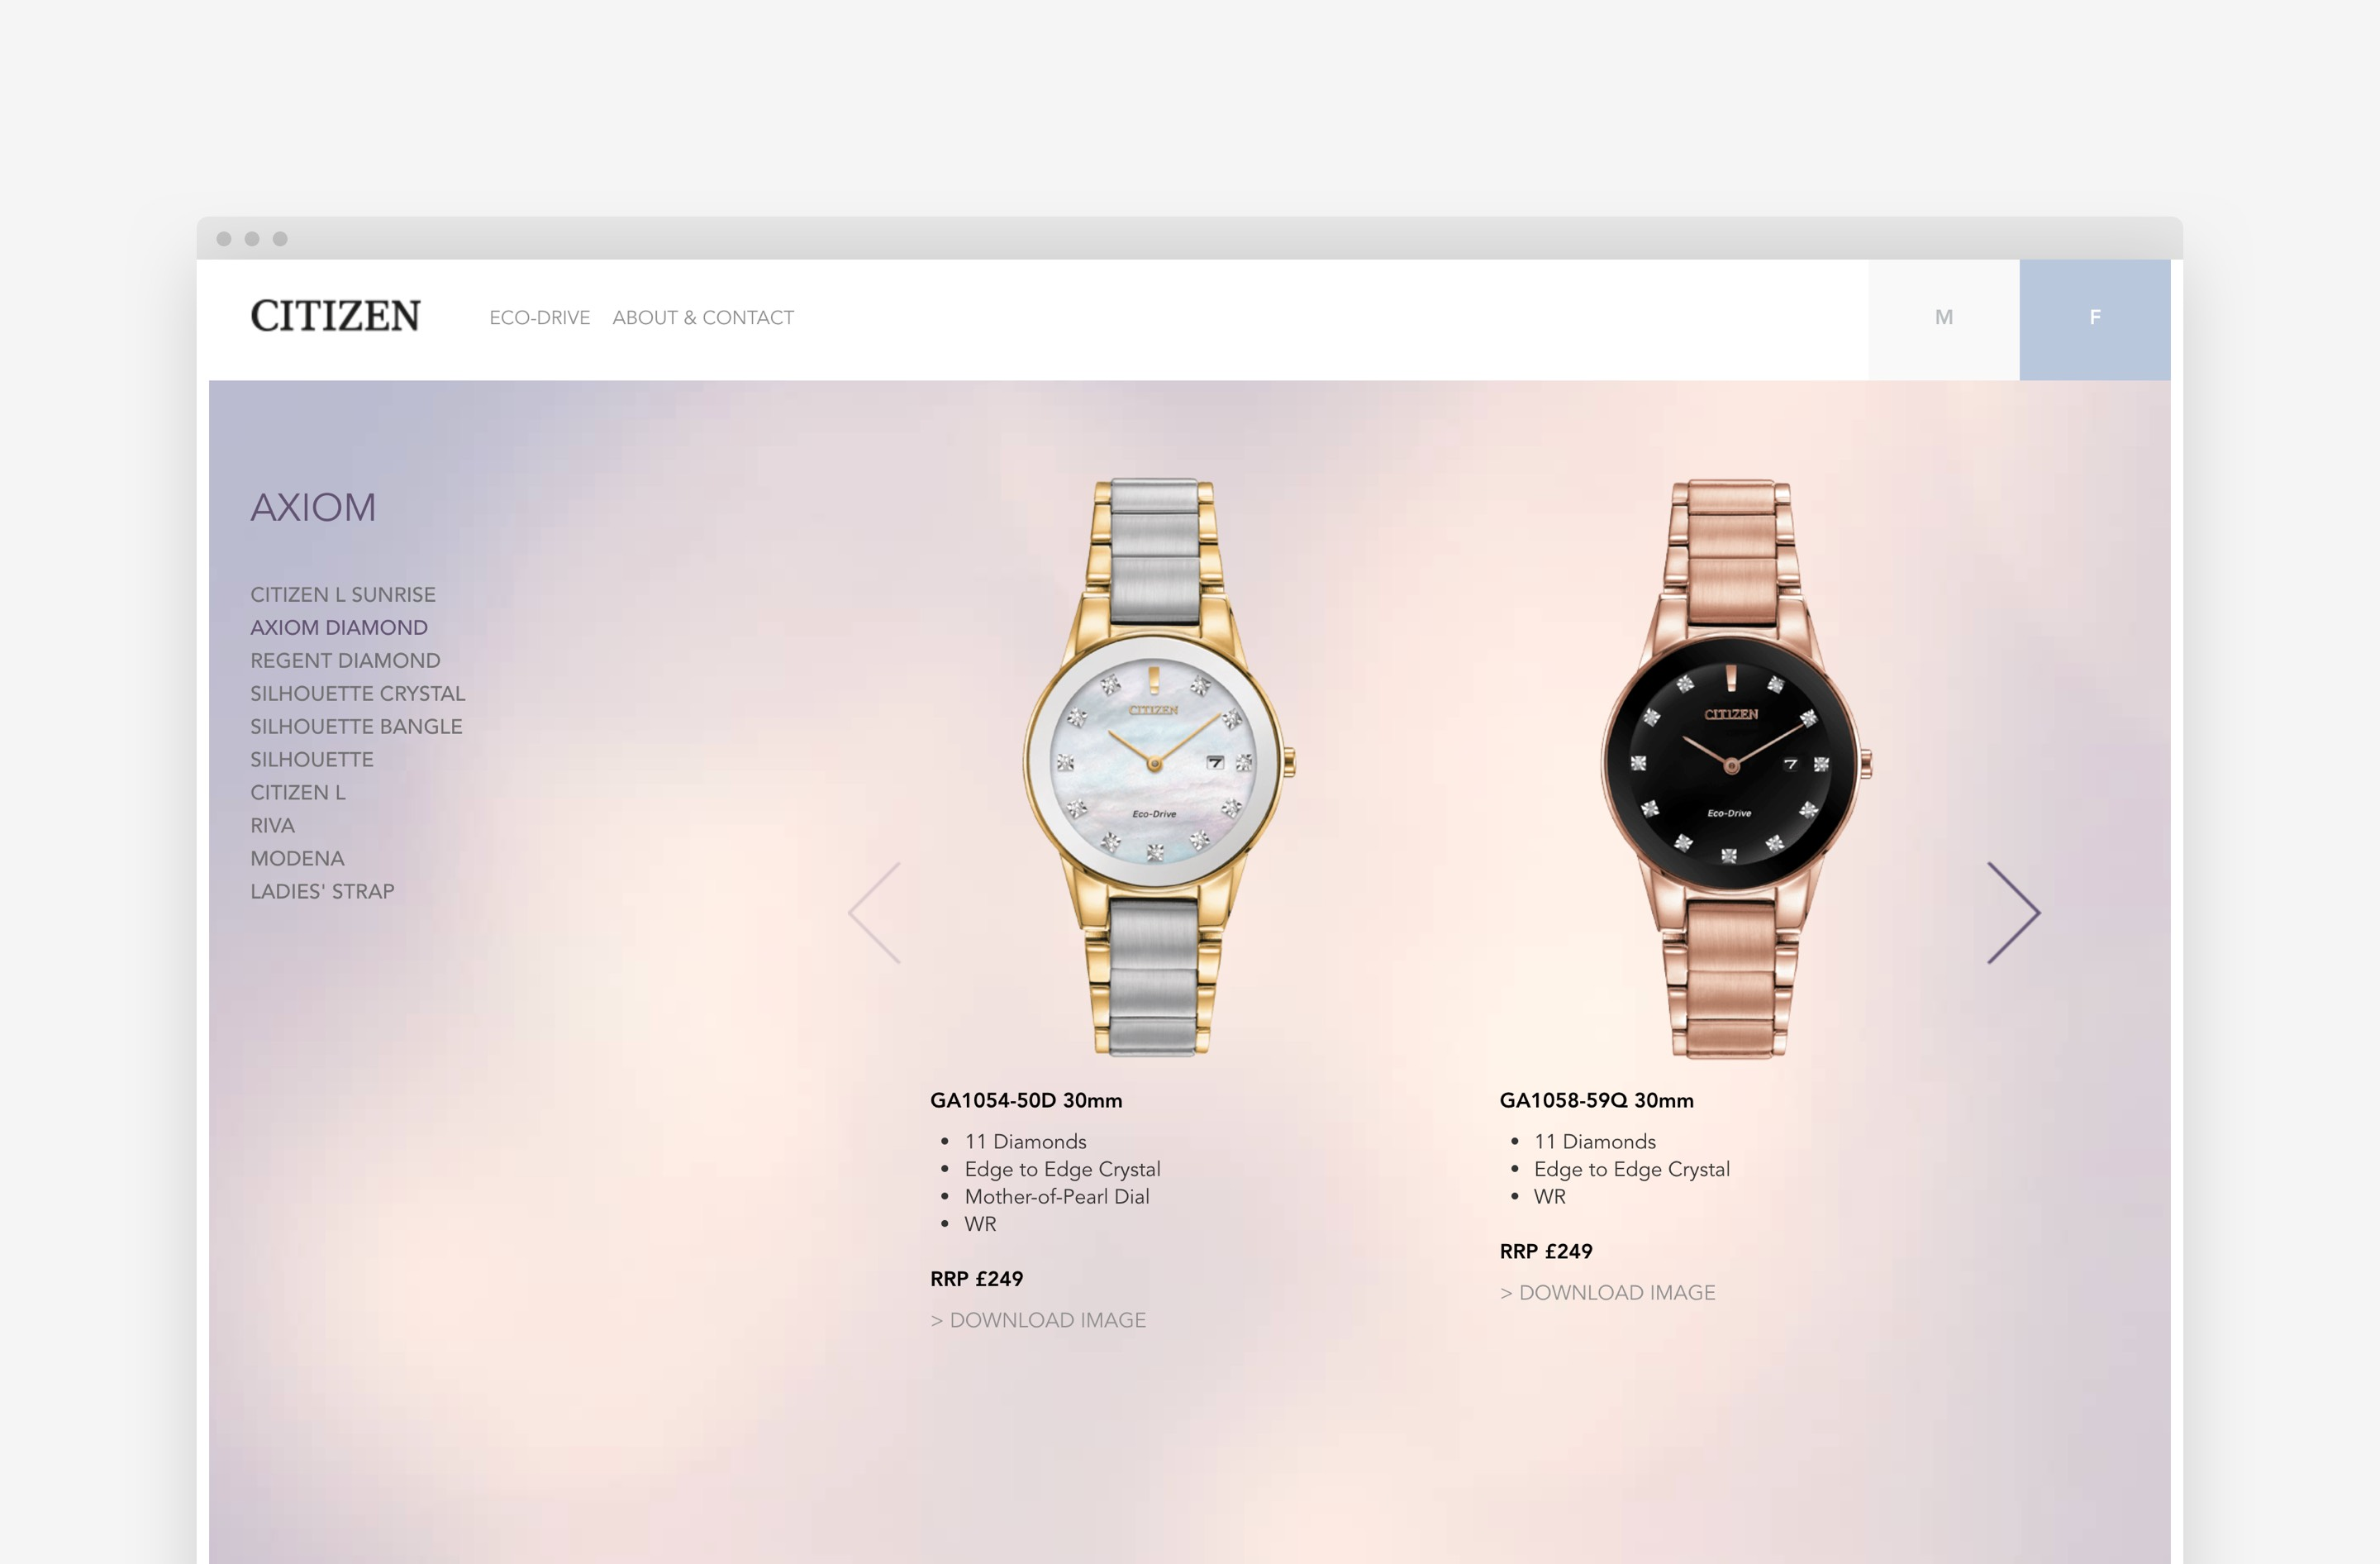 User-friendly ecommerce website design by Rawww